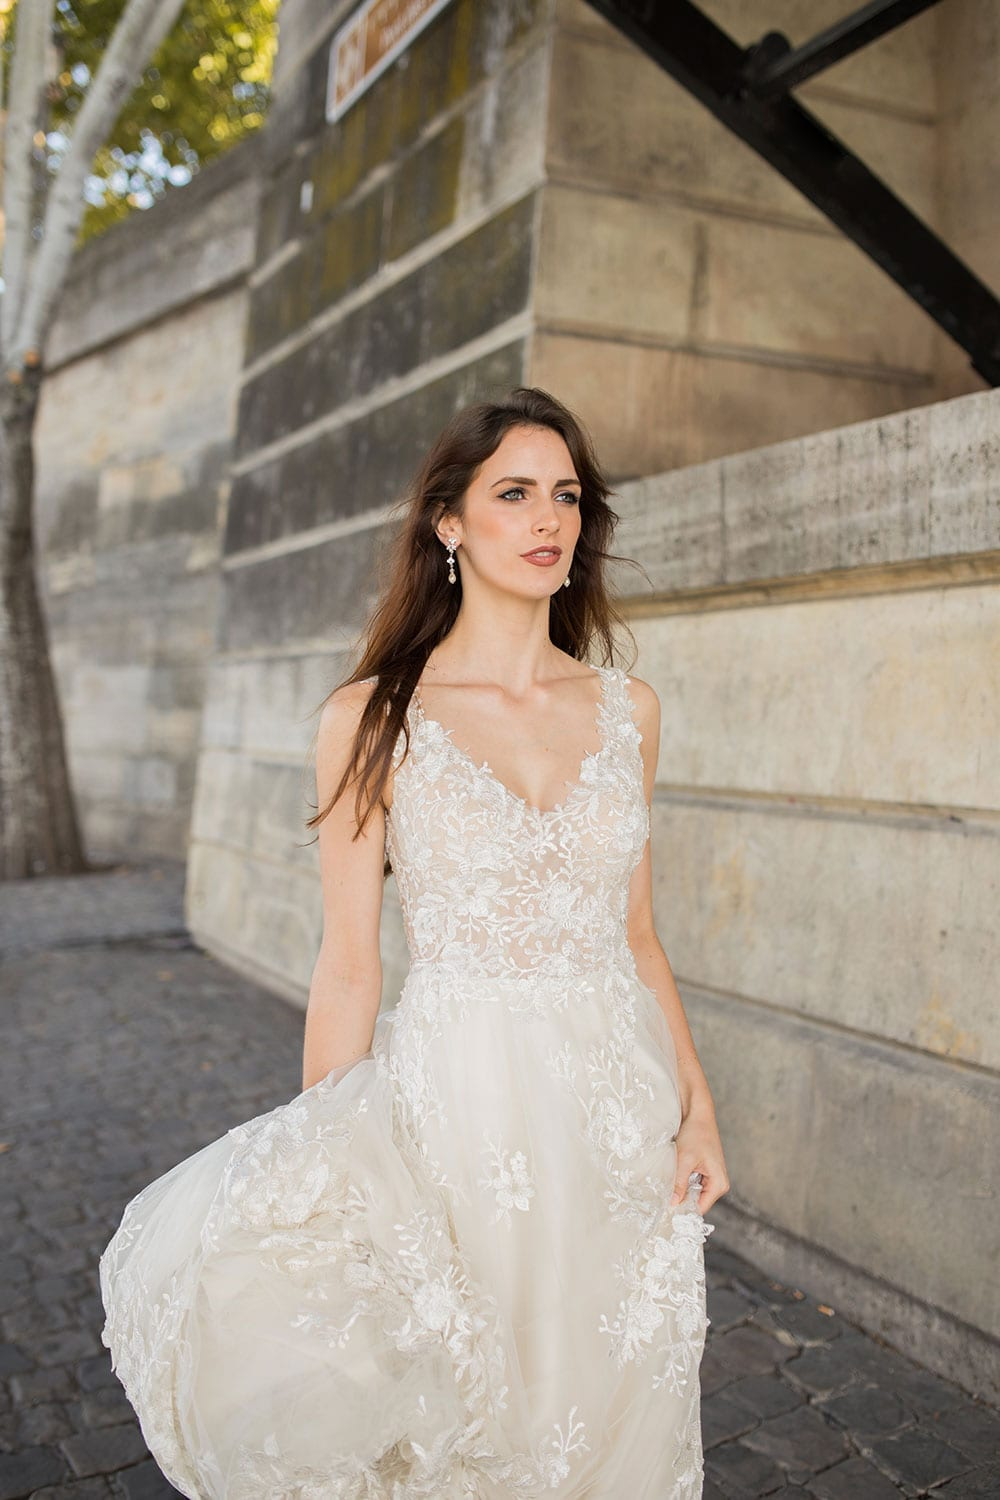 Model wearing Vinka Design Delta Wedding Dress, a Sheer Embroidered Lace Wedding Gown next to the Seine in Paris